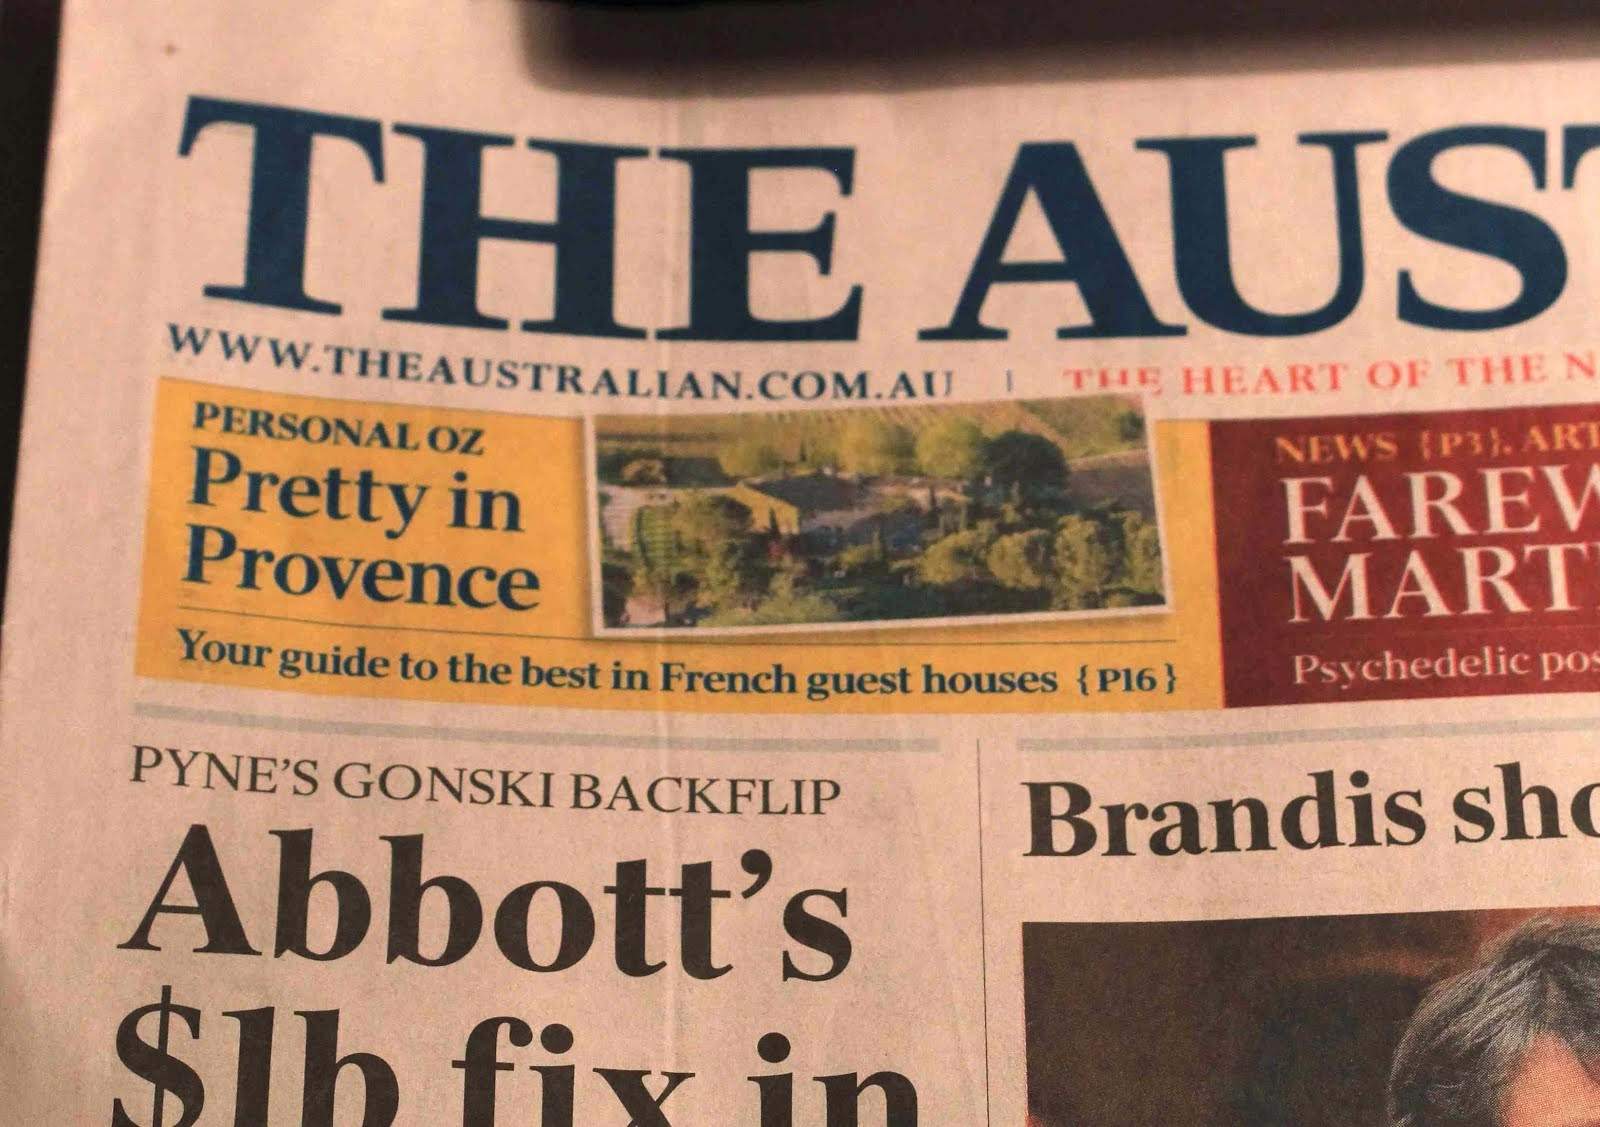 PROVENCE IN THE AUSTRALIAN NEWSPAPER